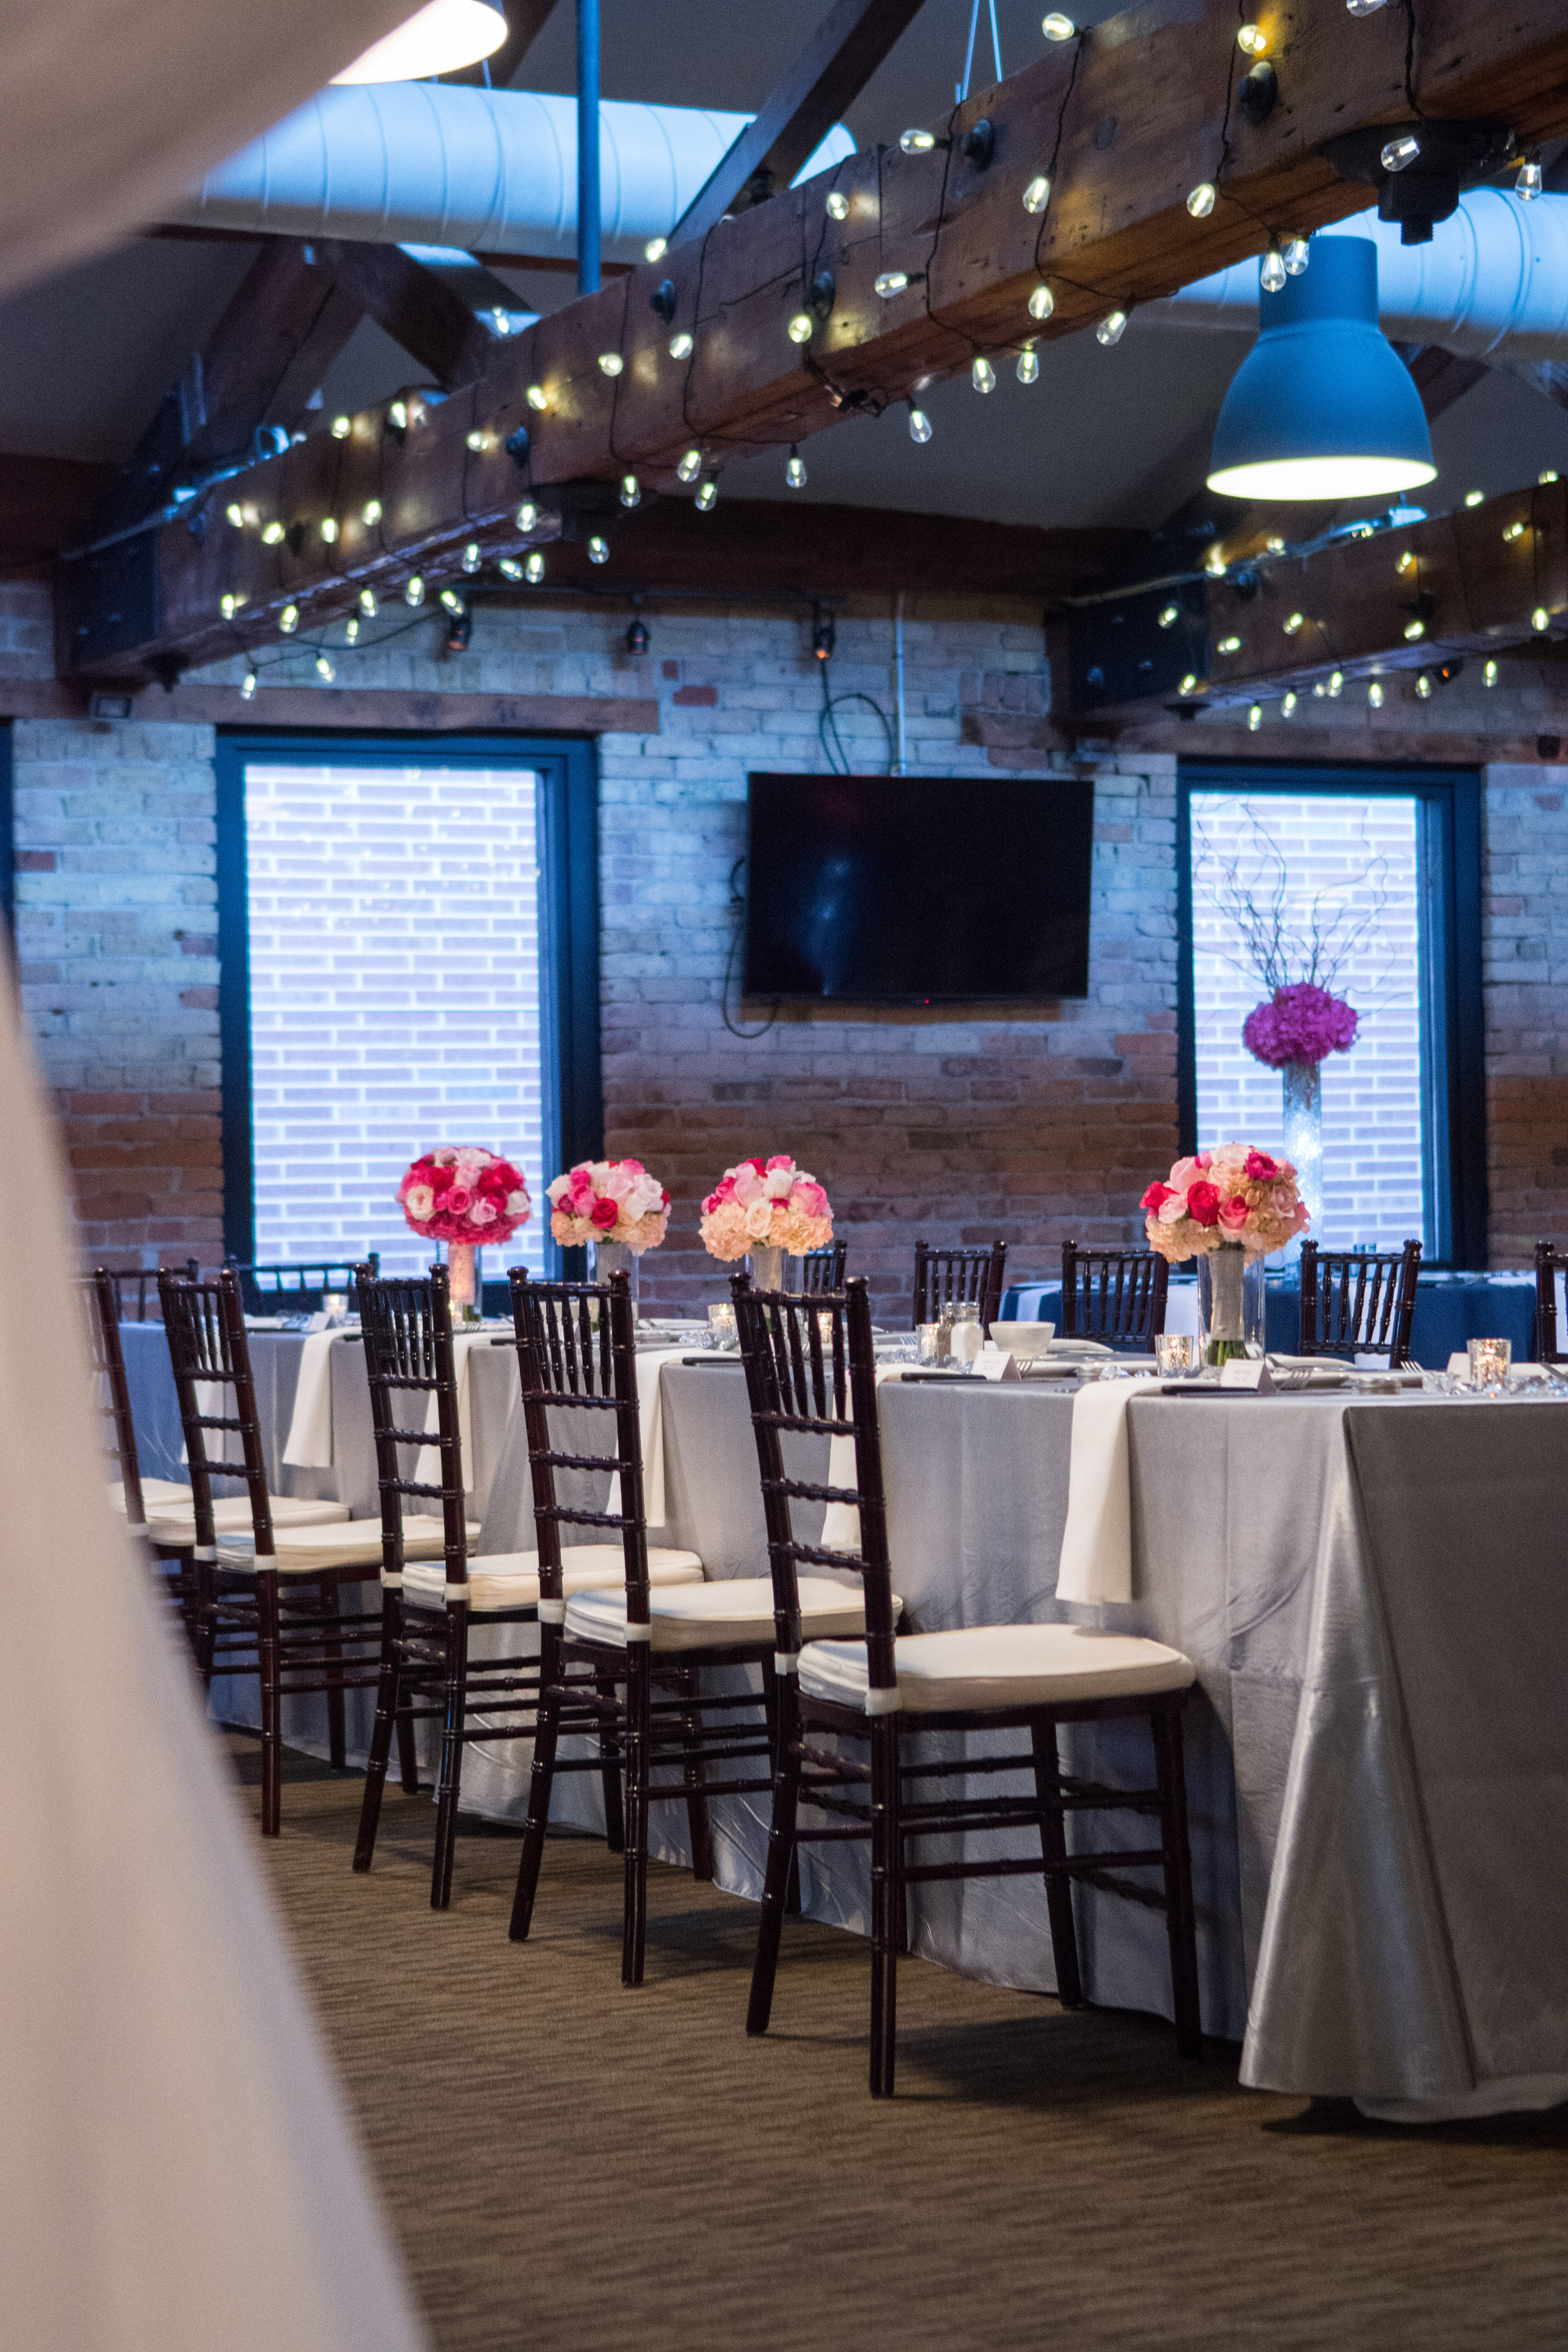 Photography: Coopersmith Photography   Planner: The Simply Elegant Group   DJ: Adagio Djay Entertainment   Bakery: Cocoa and Fig   Dress Designer: JenMar Creations   Floral Designer: Julia's Blooms   Event Venue: The Riverside Room at Minneapolis Event Center